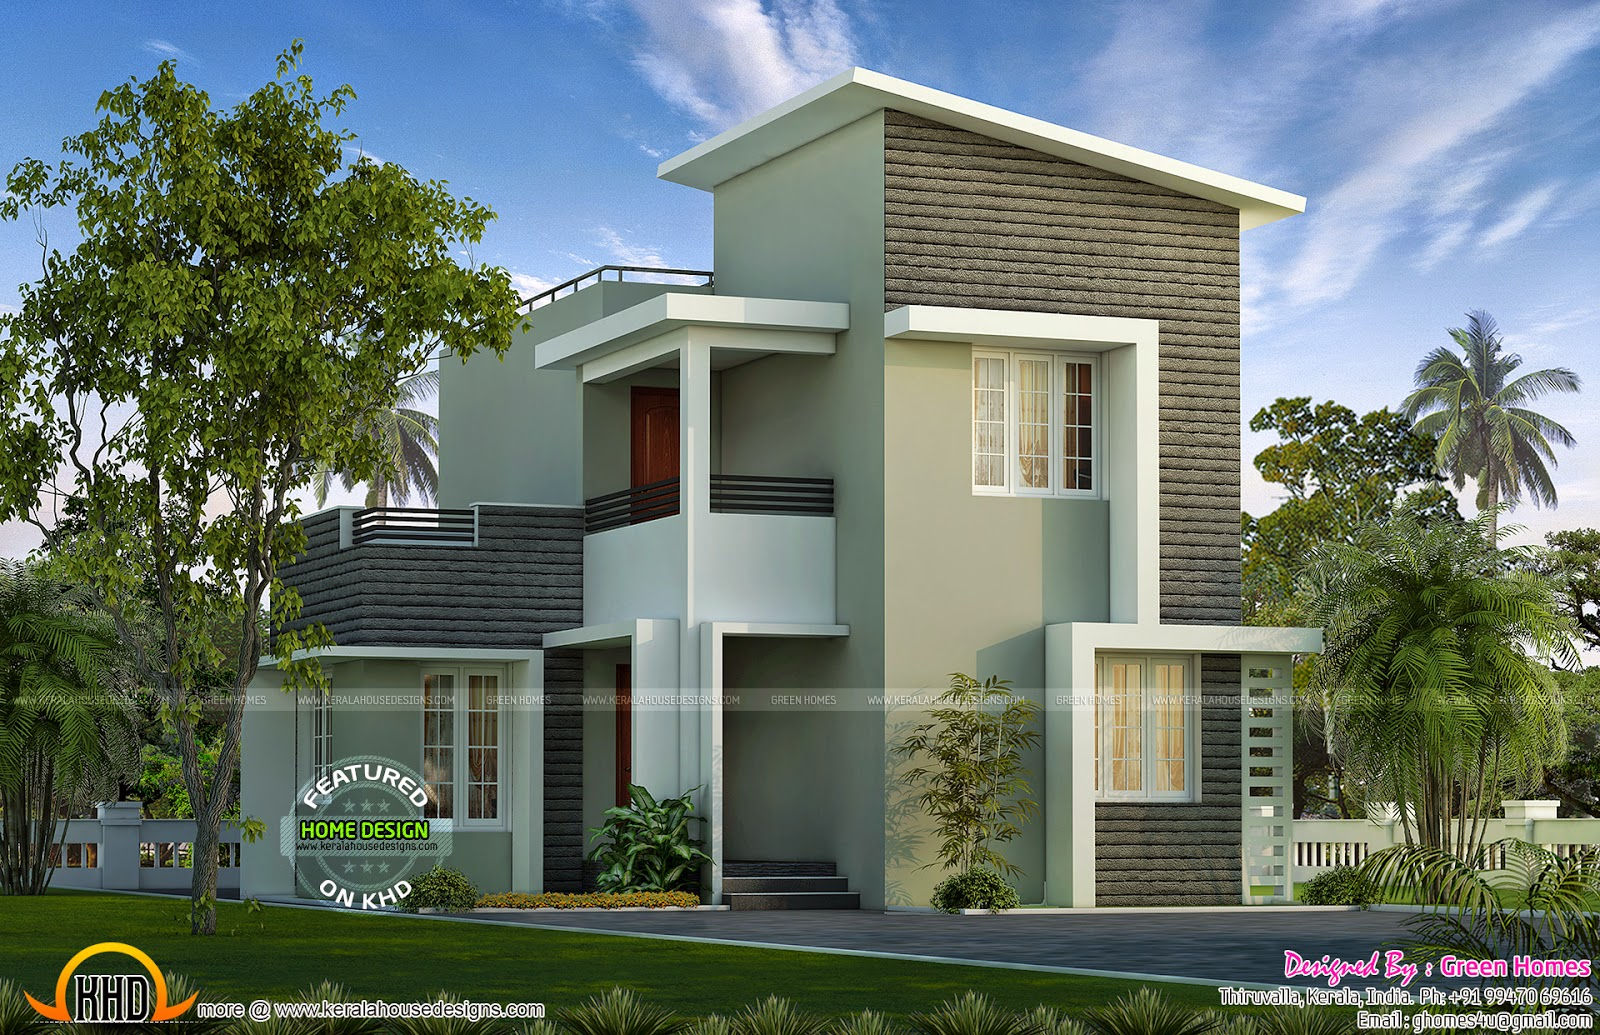 april 2015 kerala home design and floor plans On small home designs photos